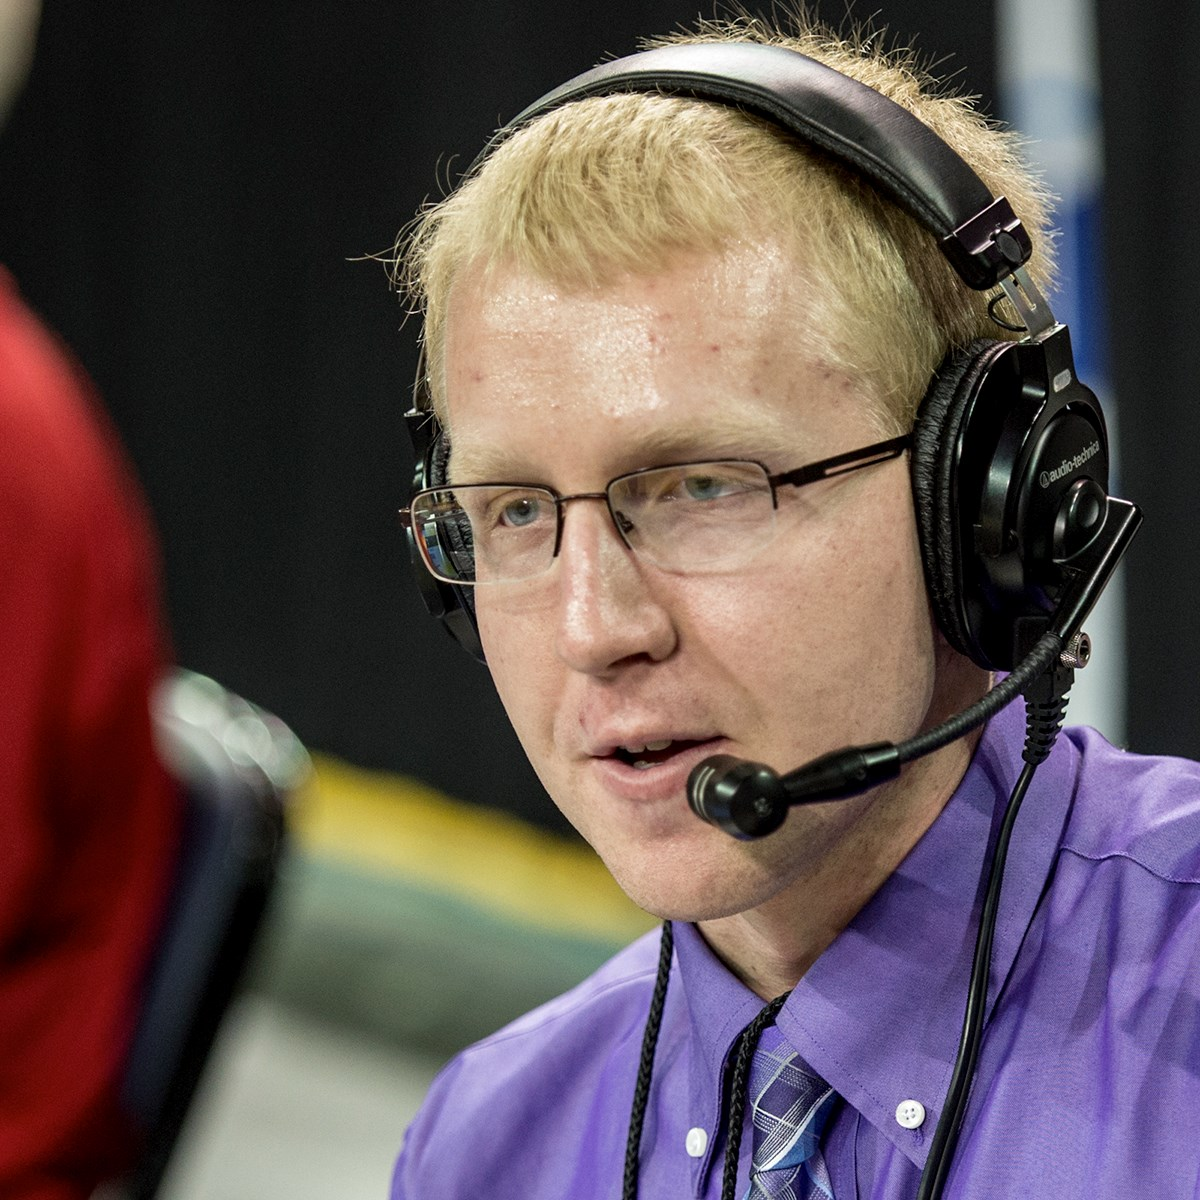 USI student named top radio sports broadcaster in Indiana